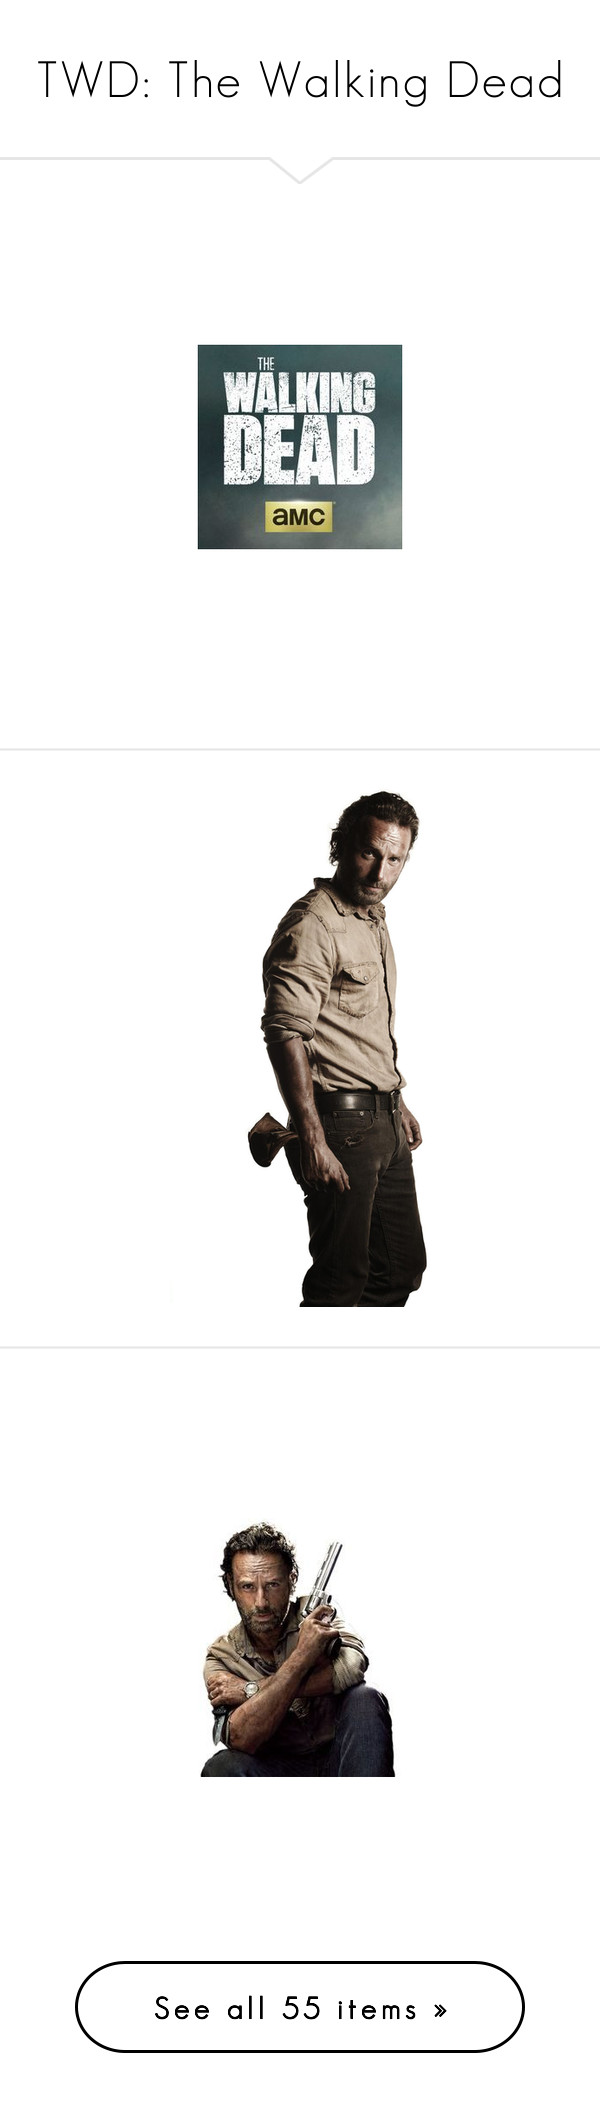 """""""TWD: The Walking Dead"""" by mandy-ruth ❤ liked on Polyvore featuring TWD, home, home decor, people, walking dead, the walking dead, accessories, eyewear, sunglasses and costumes"""